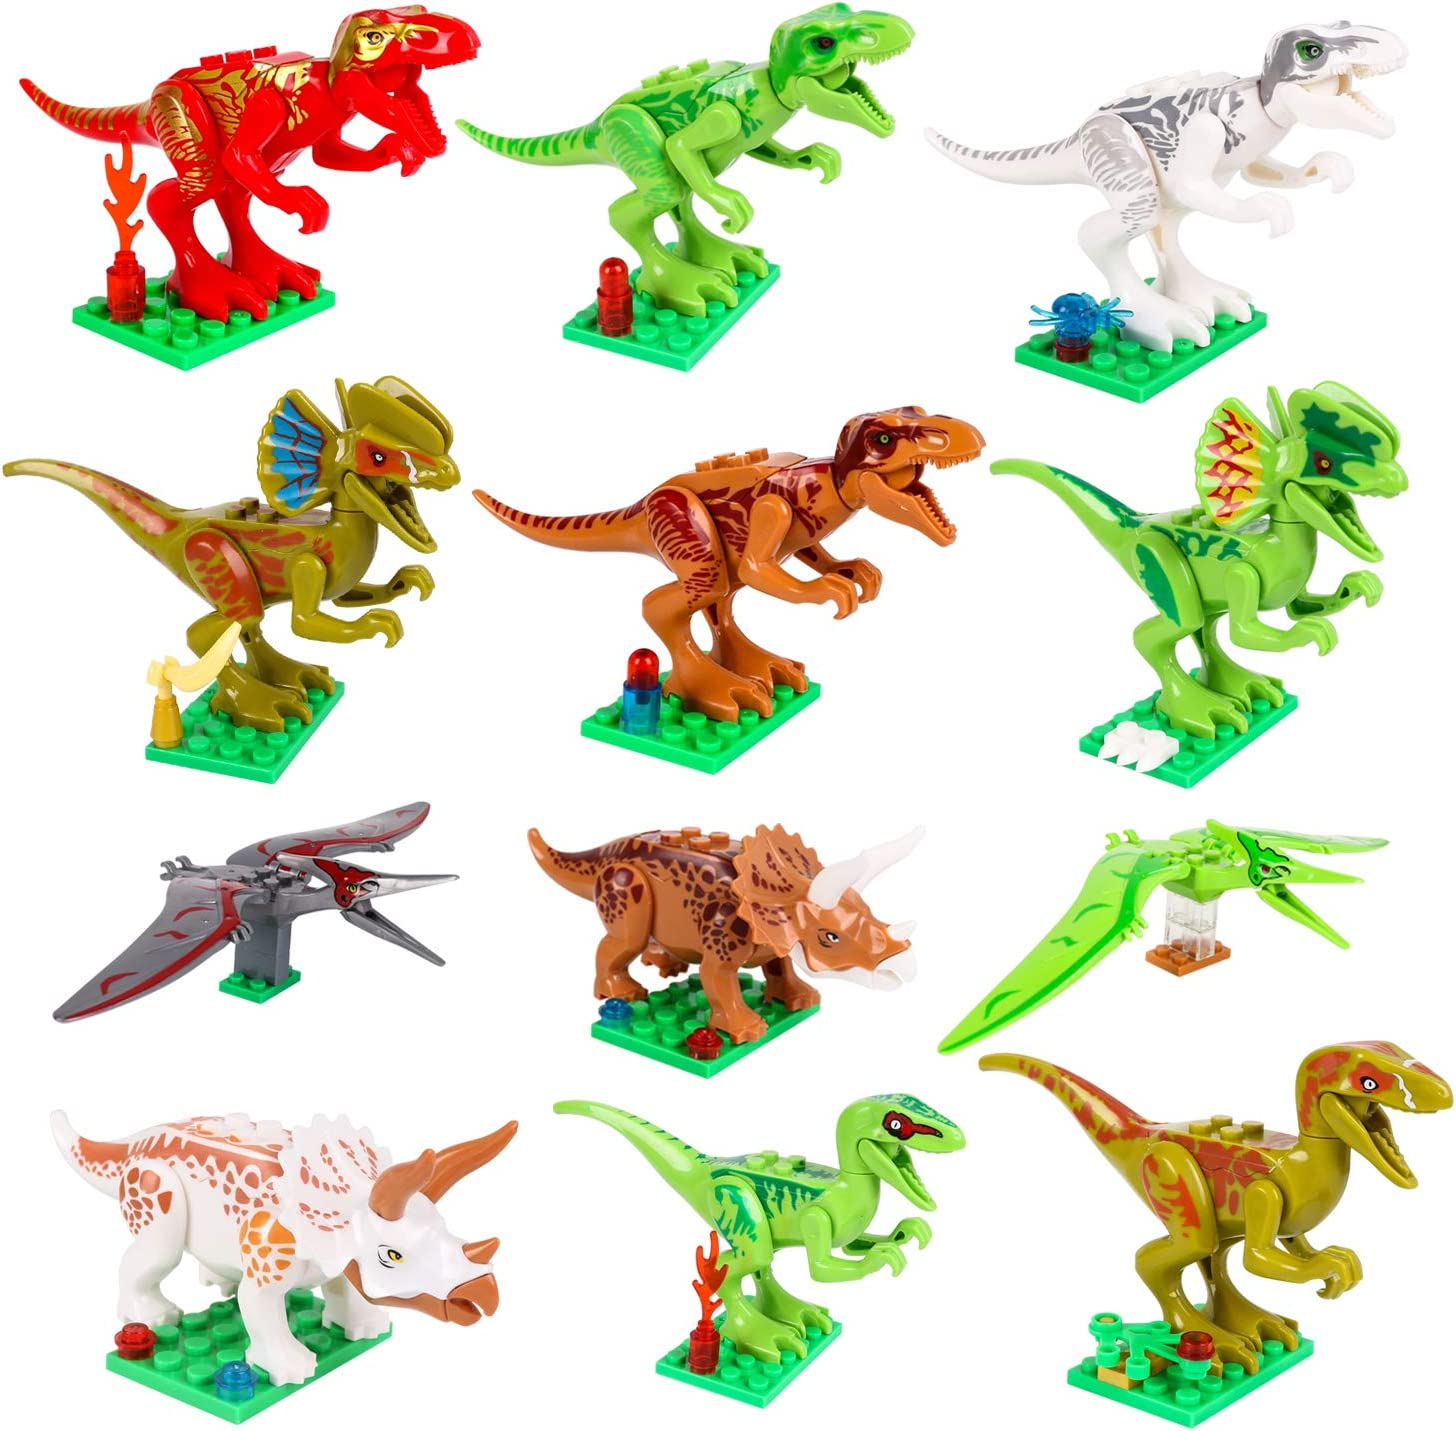 STSTECH Mini Dinosaur Toy Playset,DIY Dinos Building Block Action Figures,Educational Gift for Kids Pack of 12